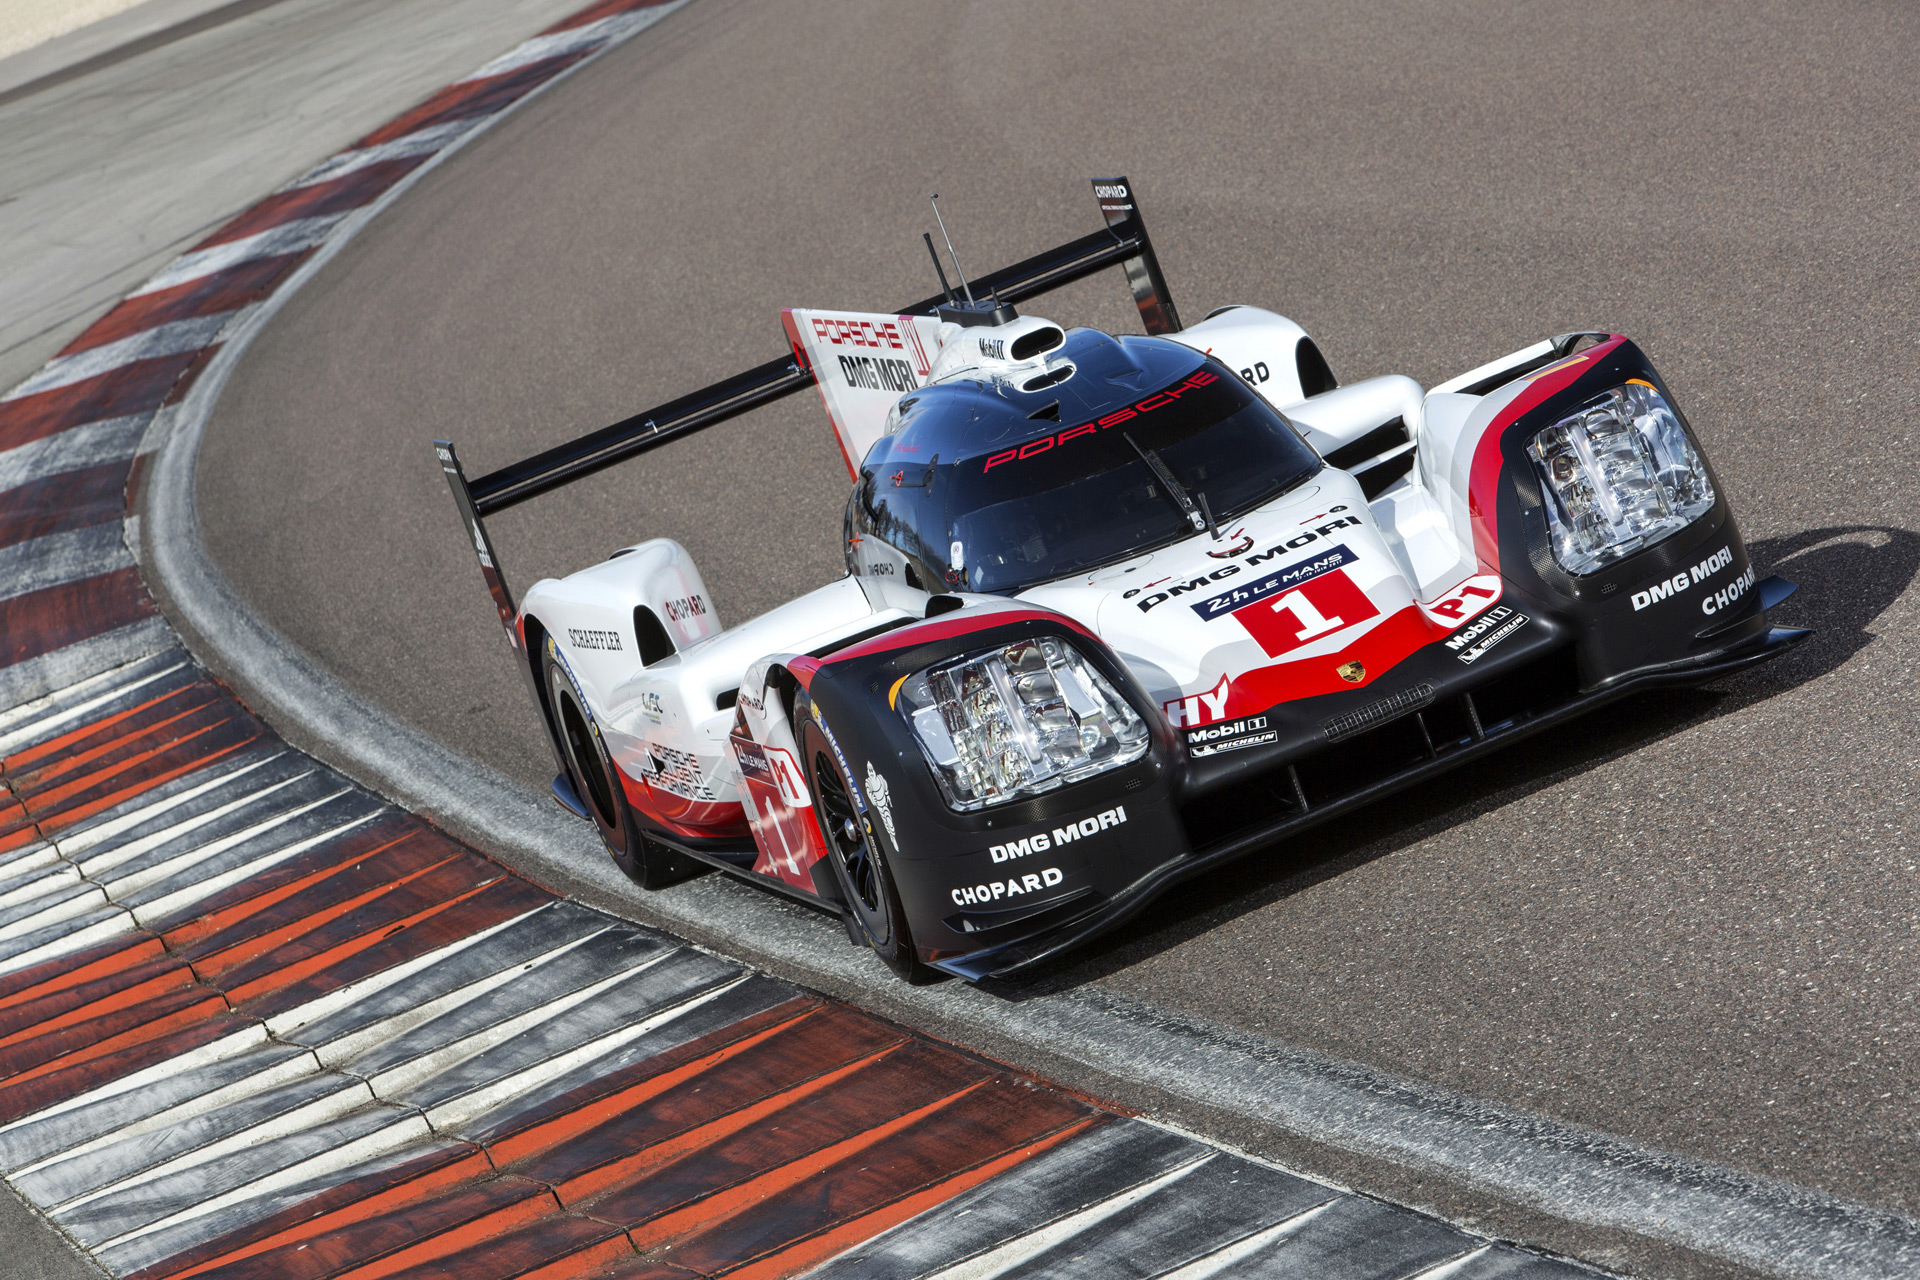 2017 porsche 919 hybrid lmp1 out to defend wec le mans titles